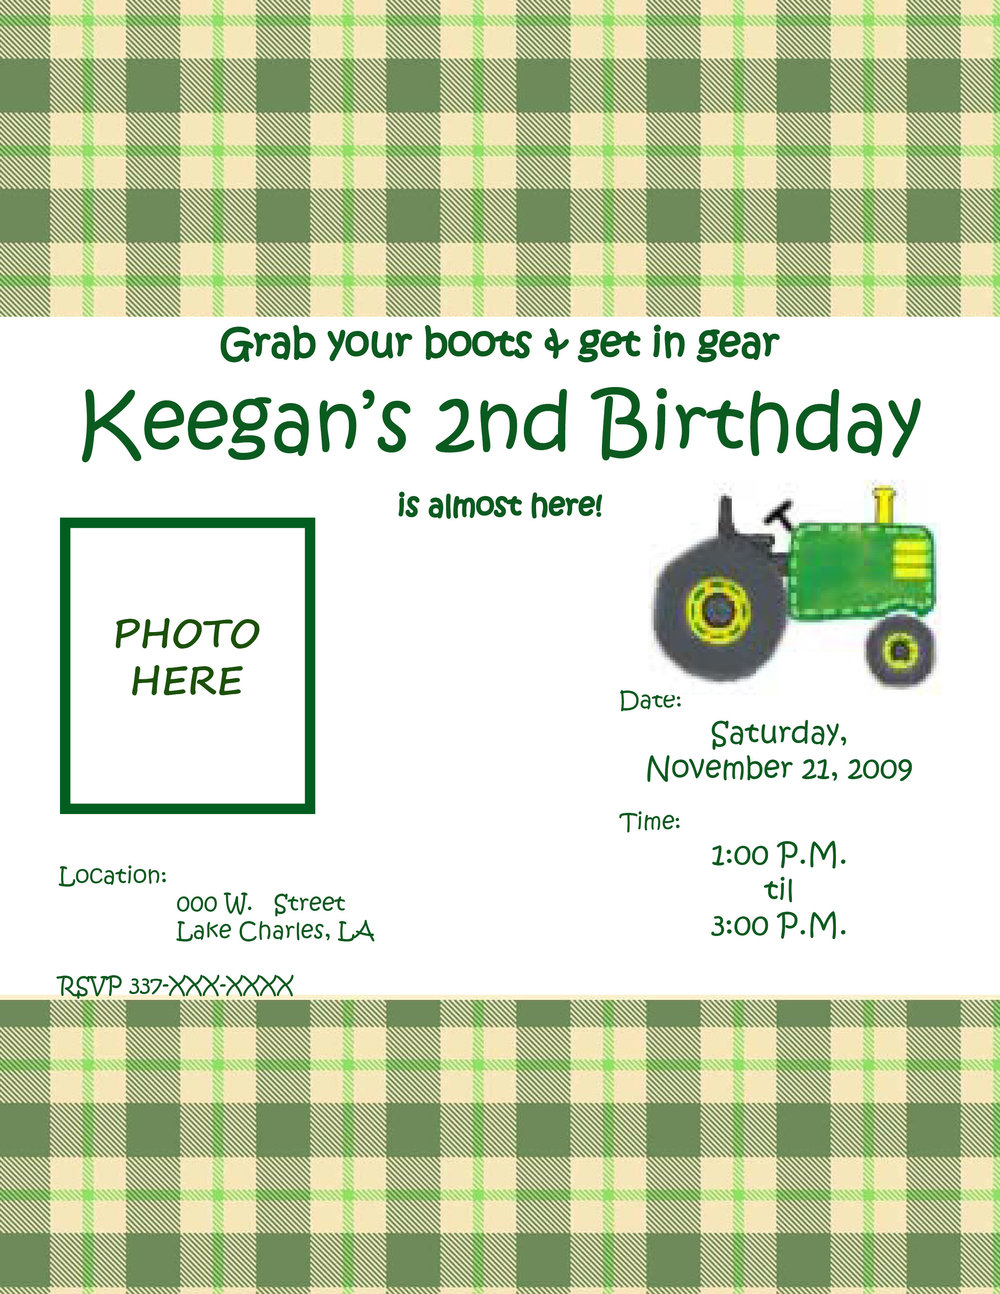 Nocilla -K Bday Invitation2009.jpg